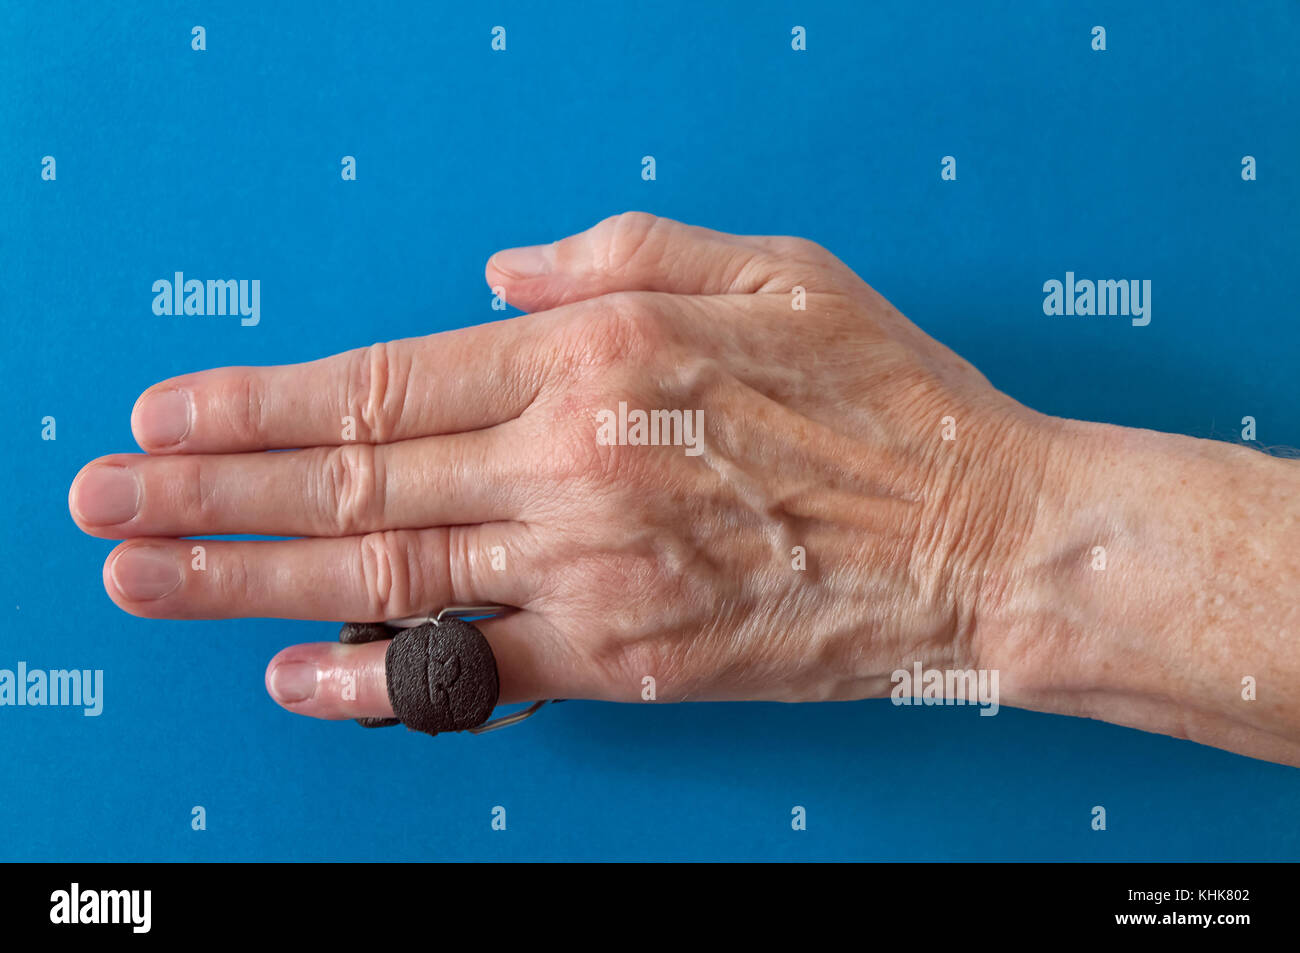 Finger splint on a little 'pinkie' finger after Dupuytren's Contracture corrective surgery to straighten - Stock Image